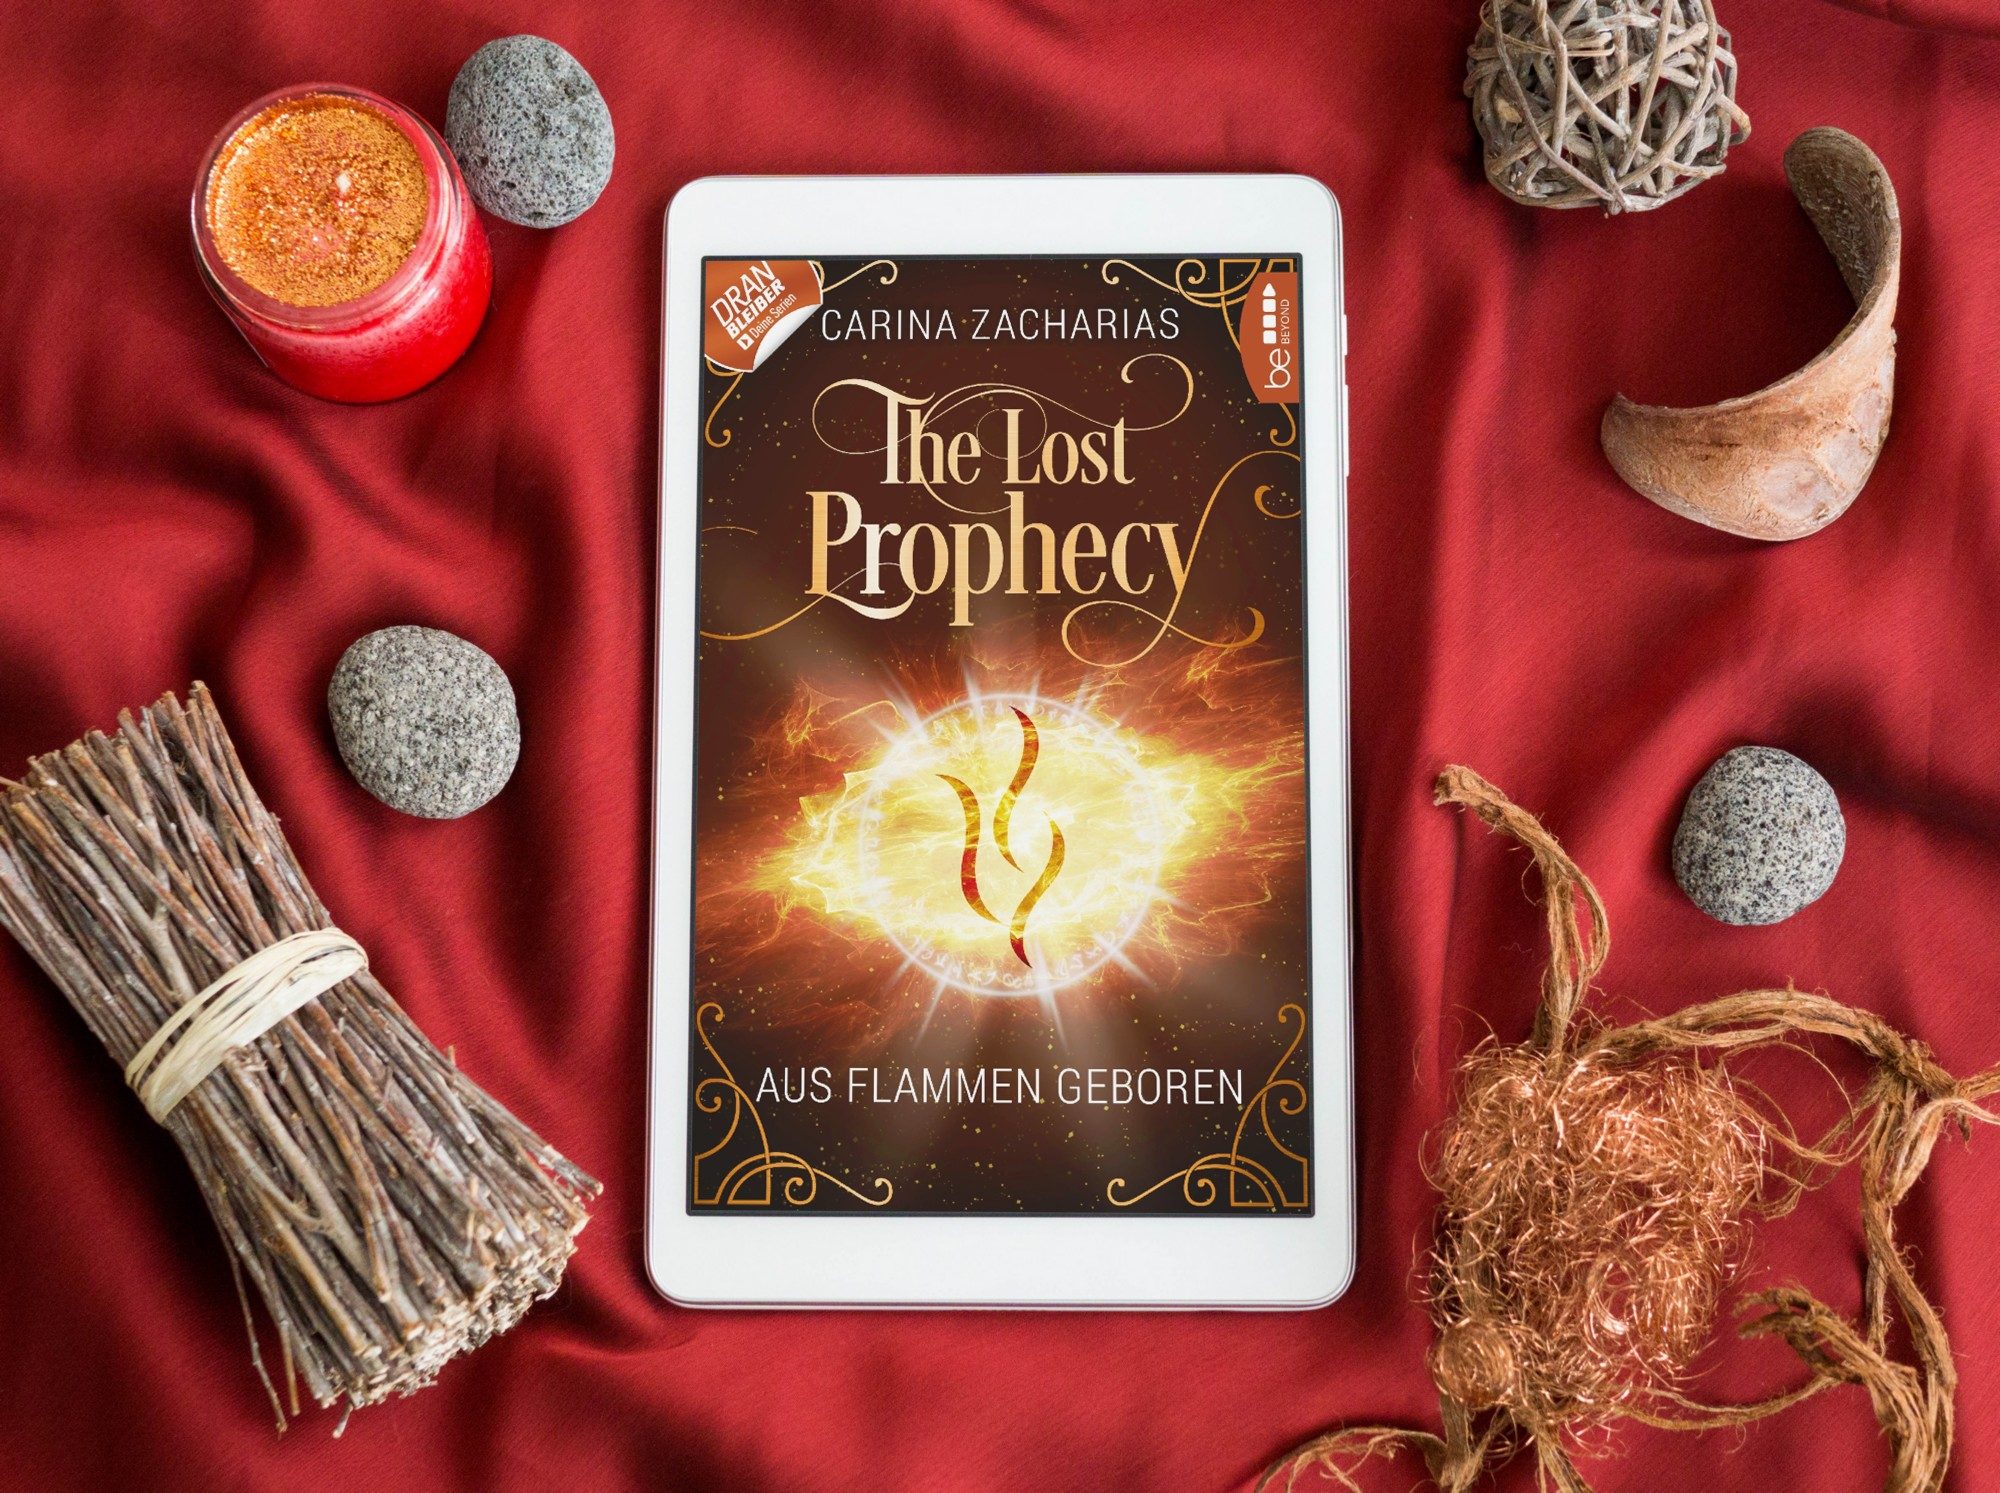 The Lost Prophecy: Aus Flammen geboren – Carina Zacharias graphic